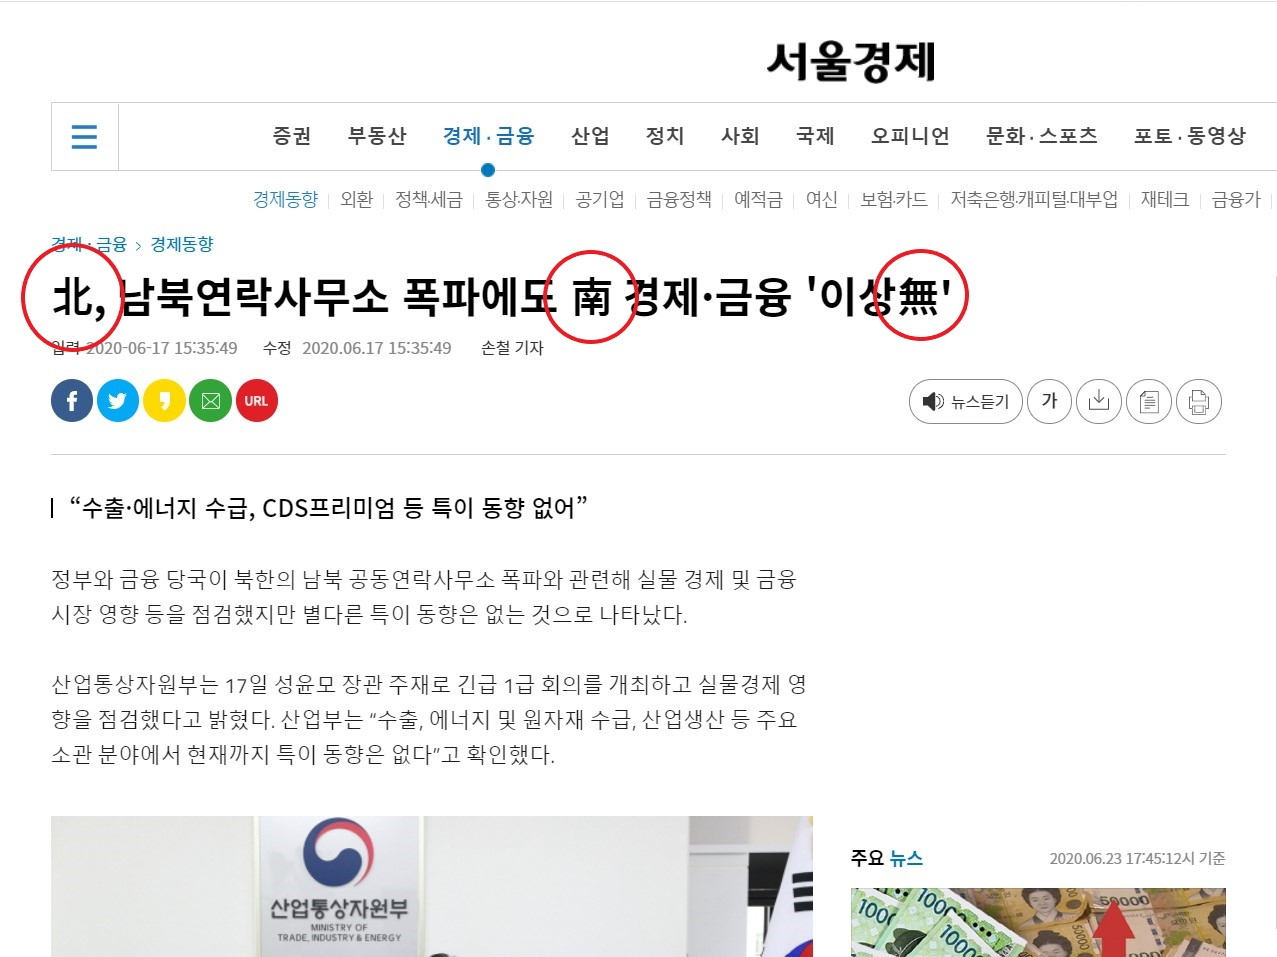 Example of Korean news titles involving Chinese characters